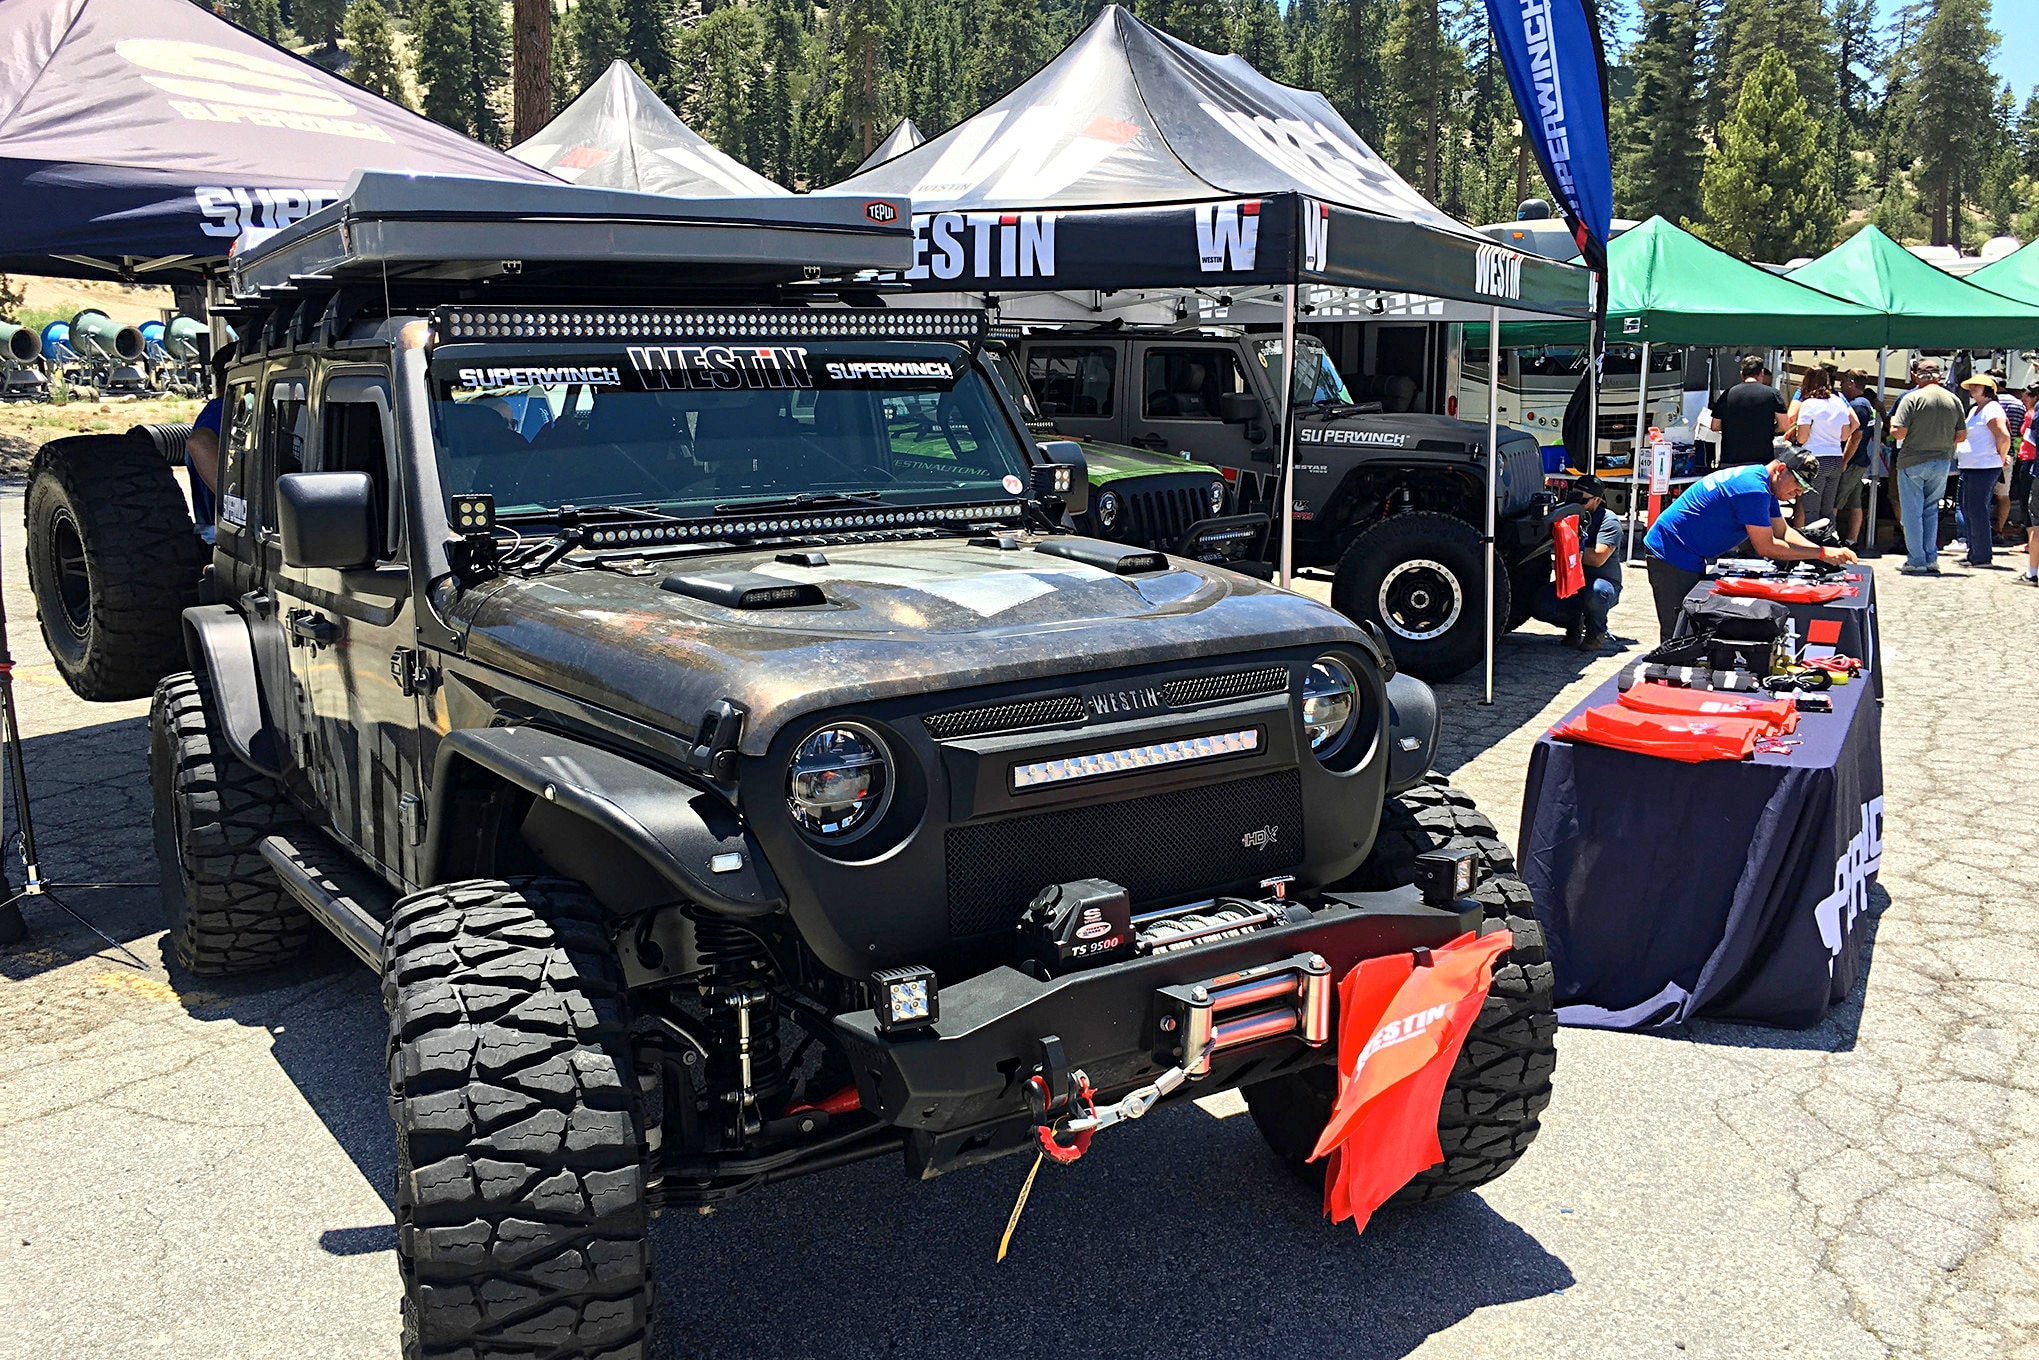 052 jeep event big bear forest fest 2019 inland empire